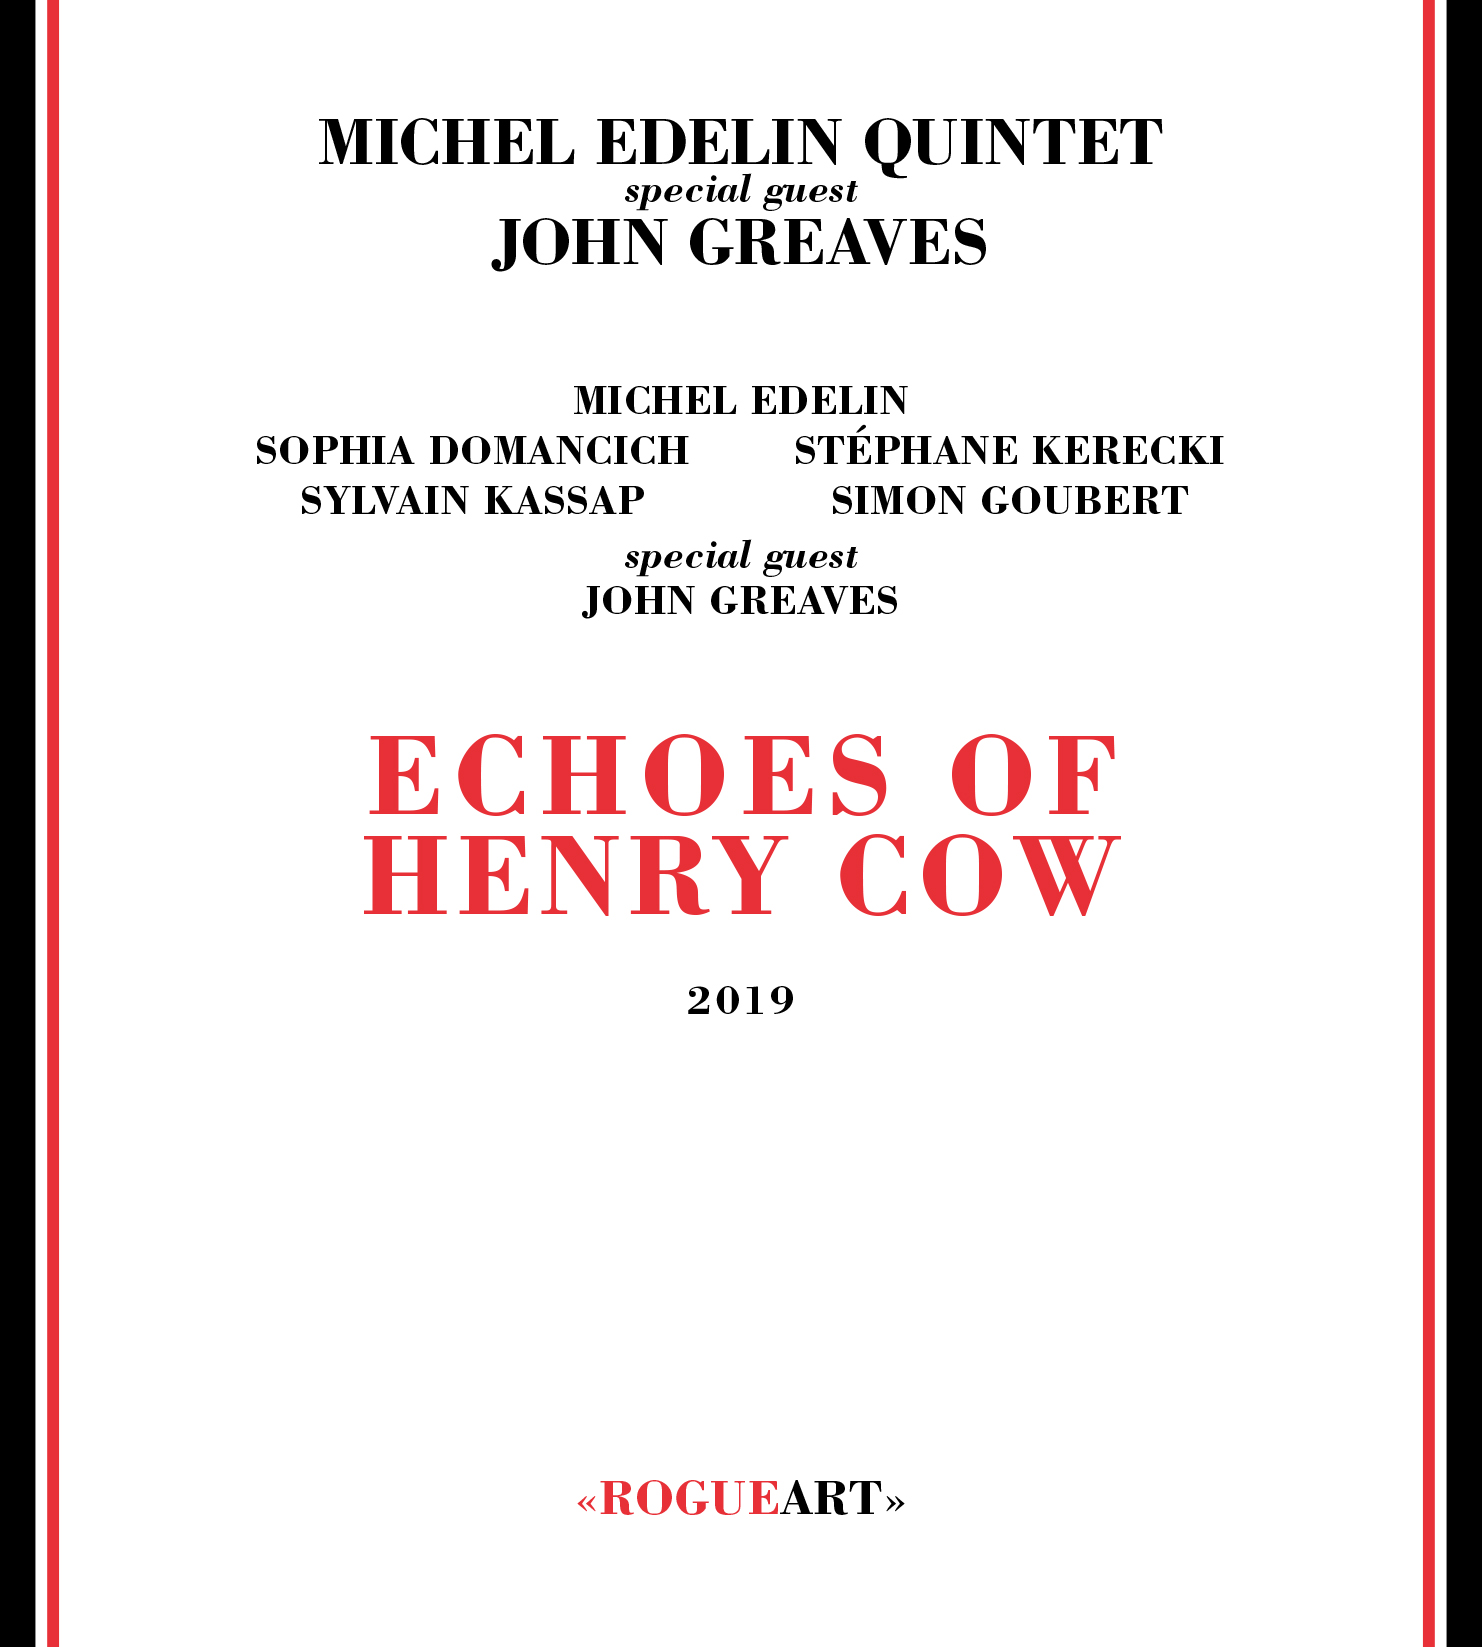 Front cover of the album ECHOES OF HENRY COW